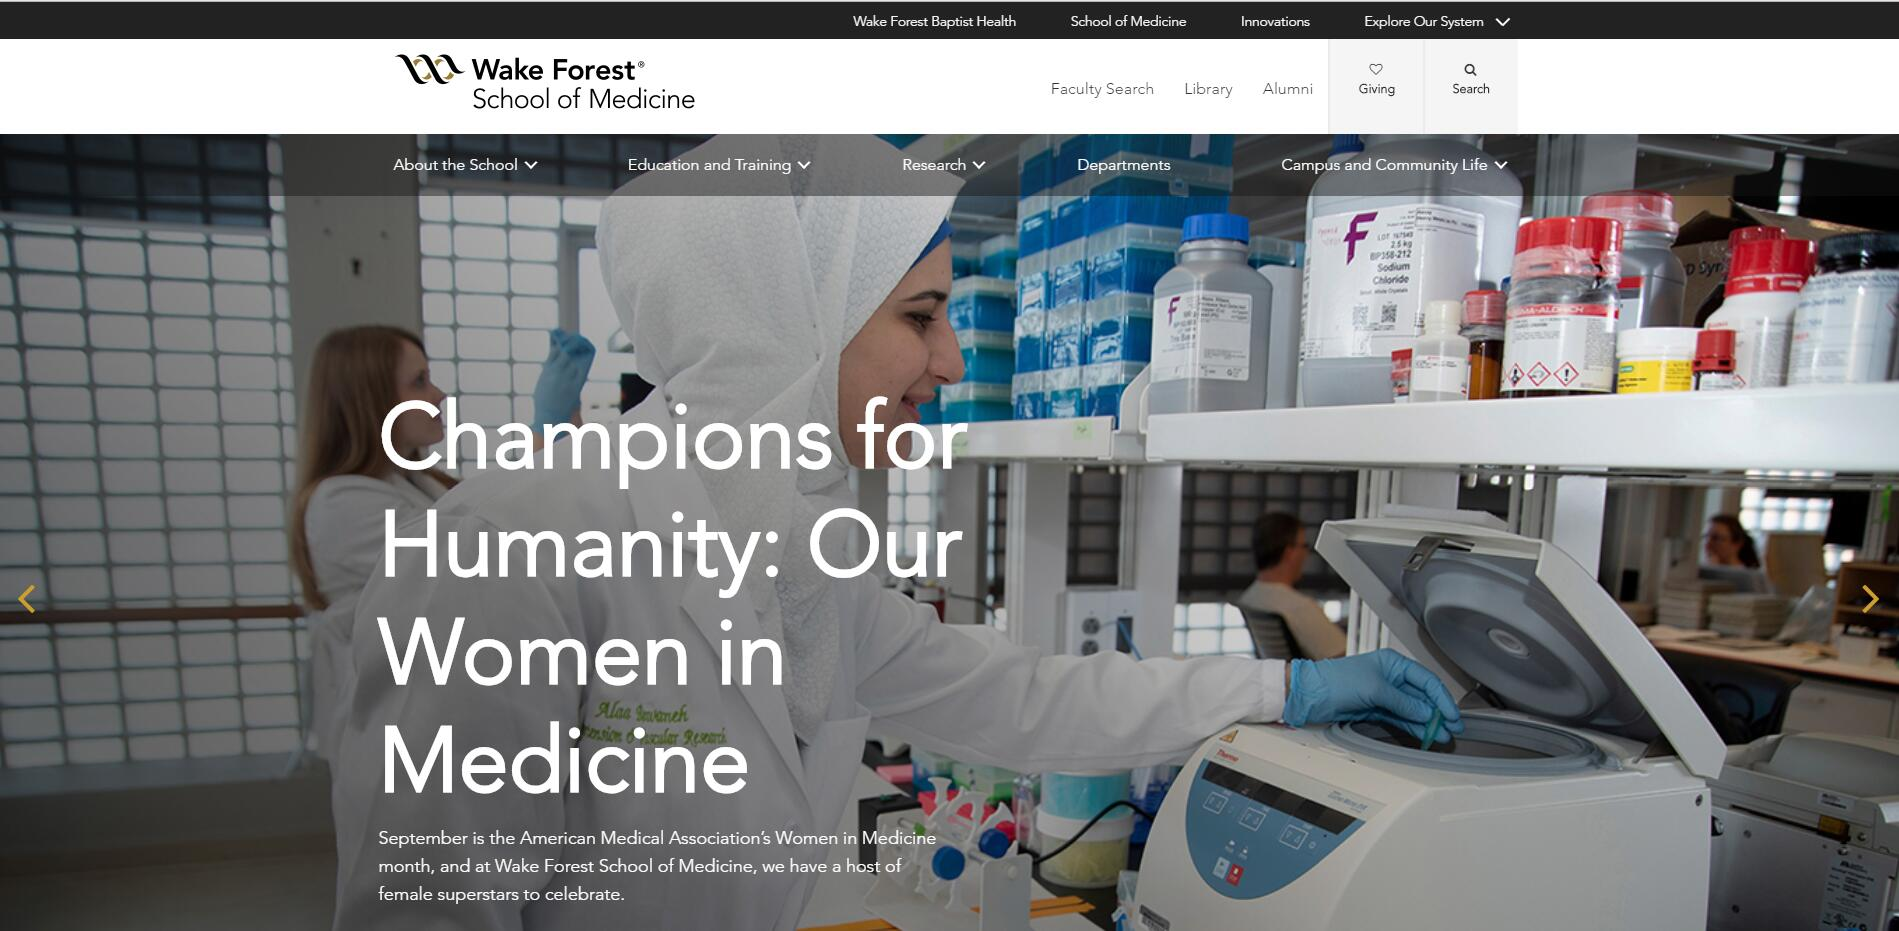 The School of Medicine at Wake Forest University